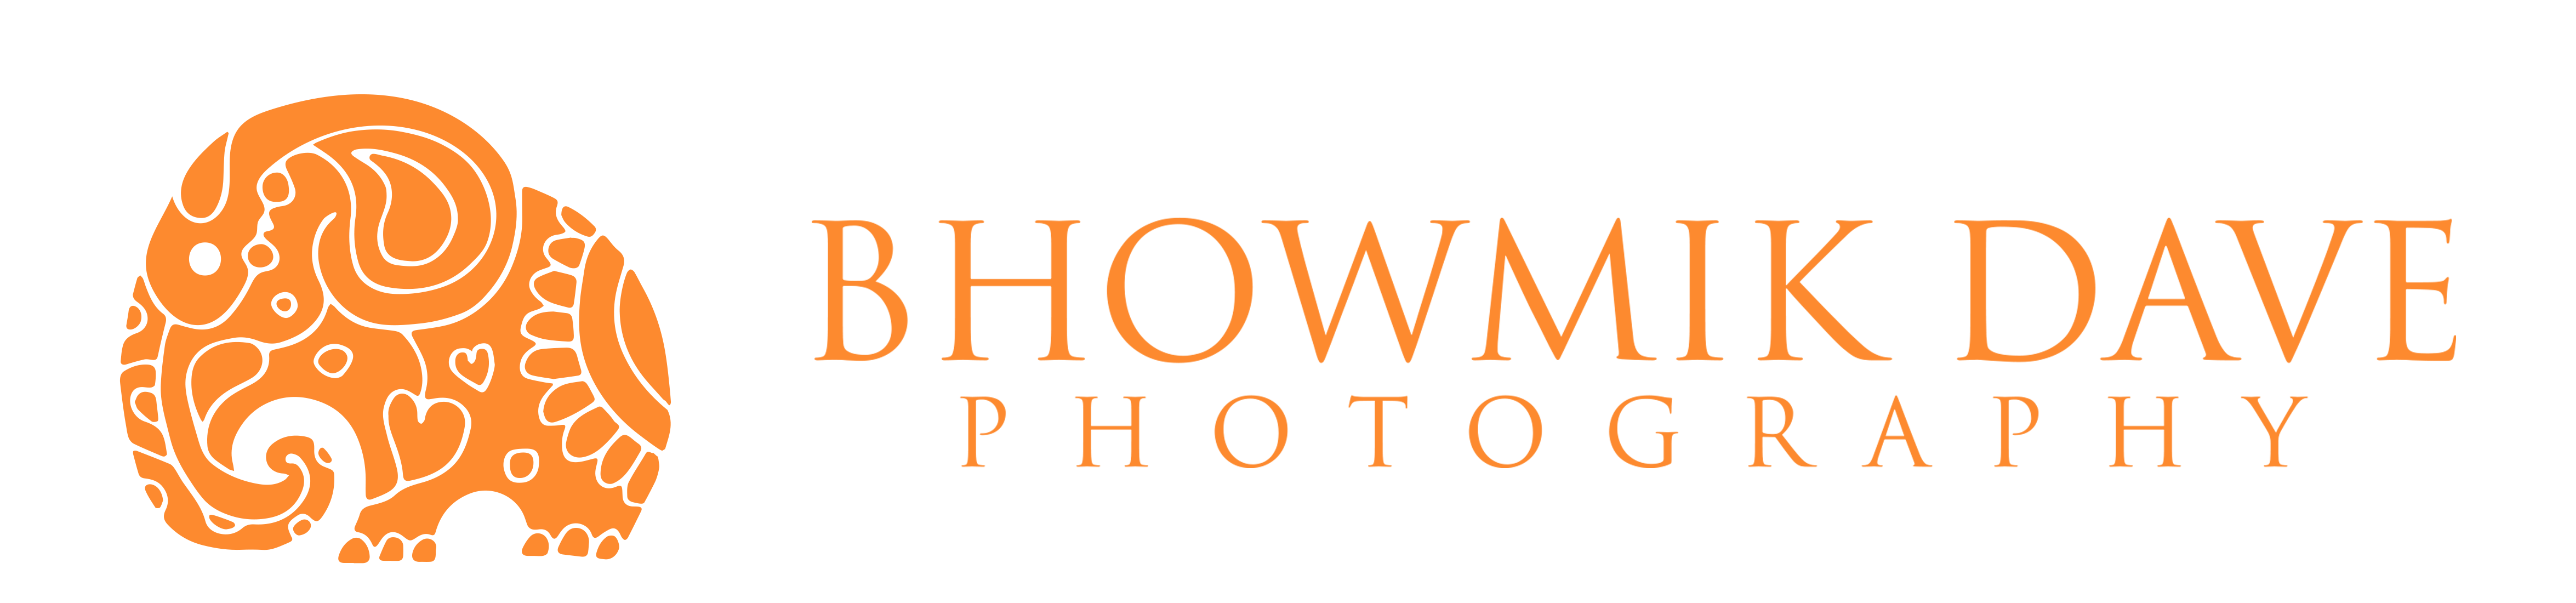 Bhowmik Dave Photography